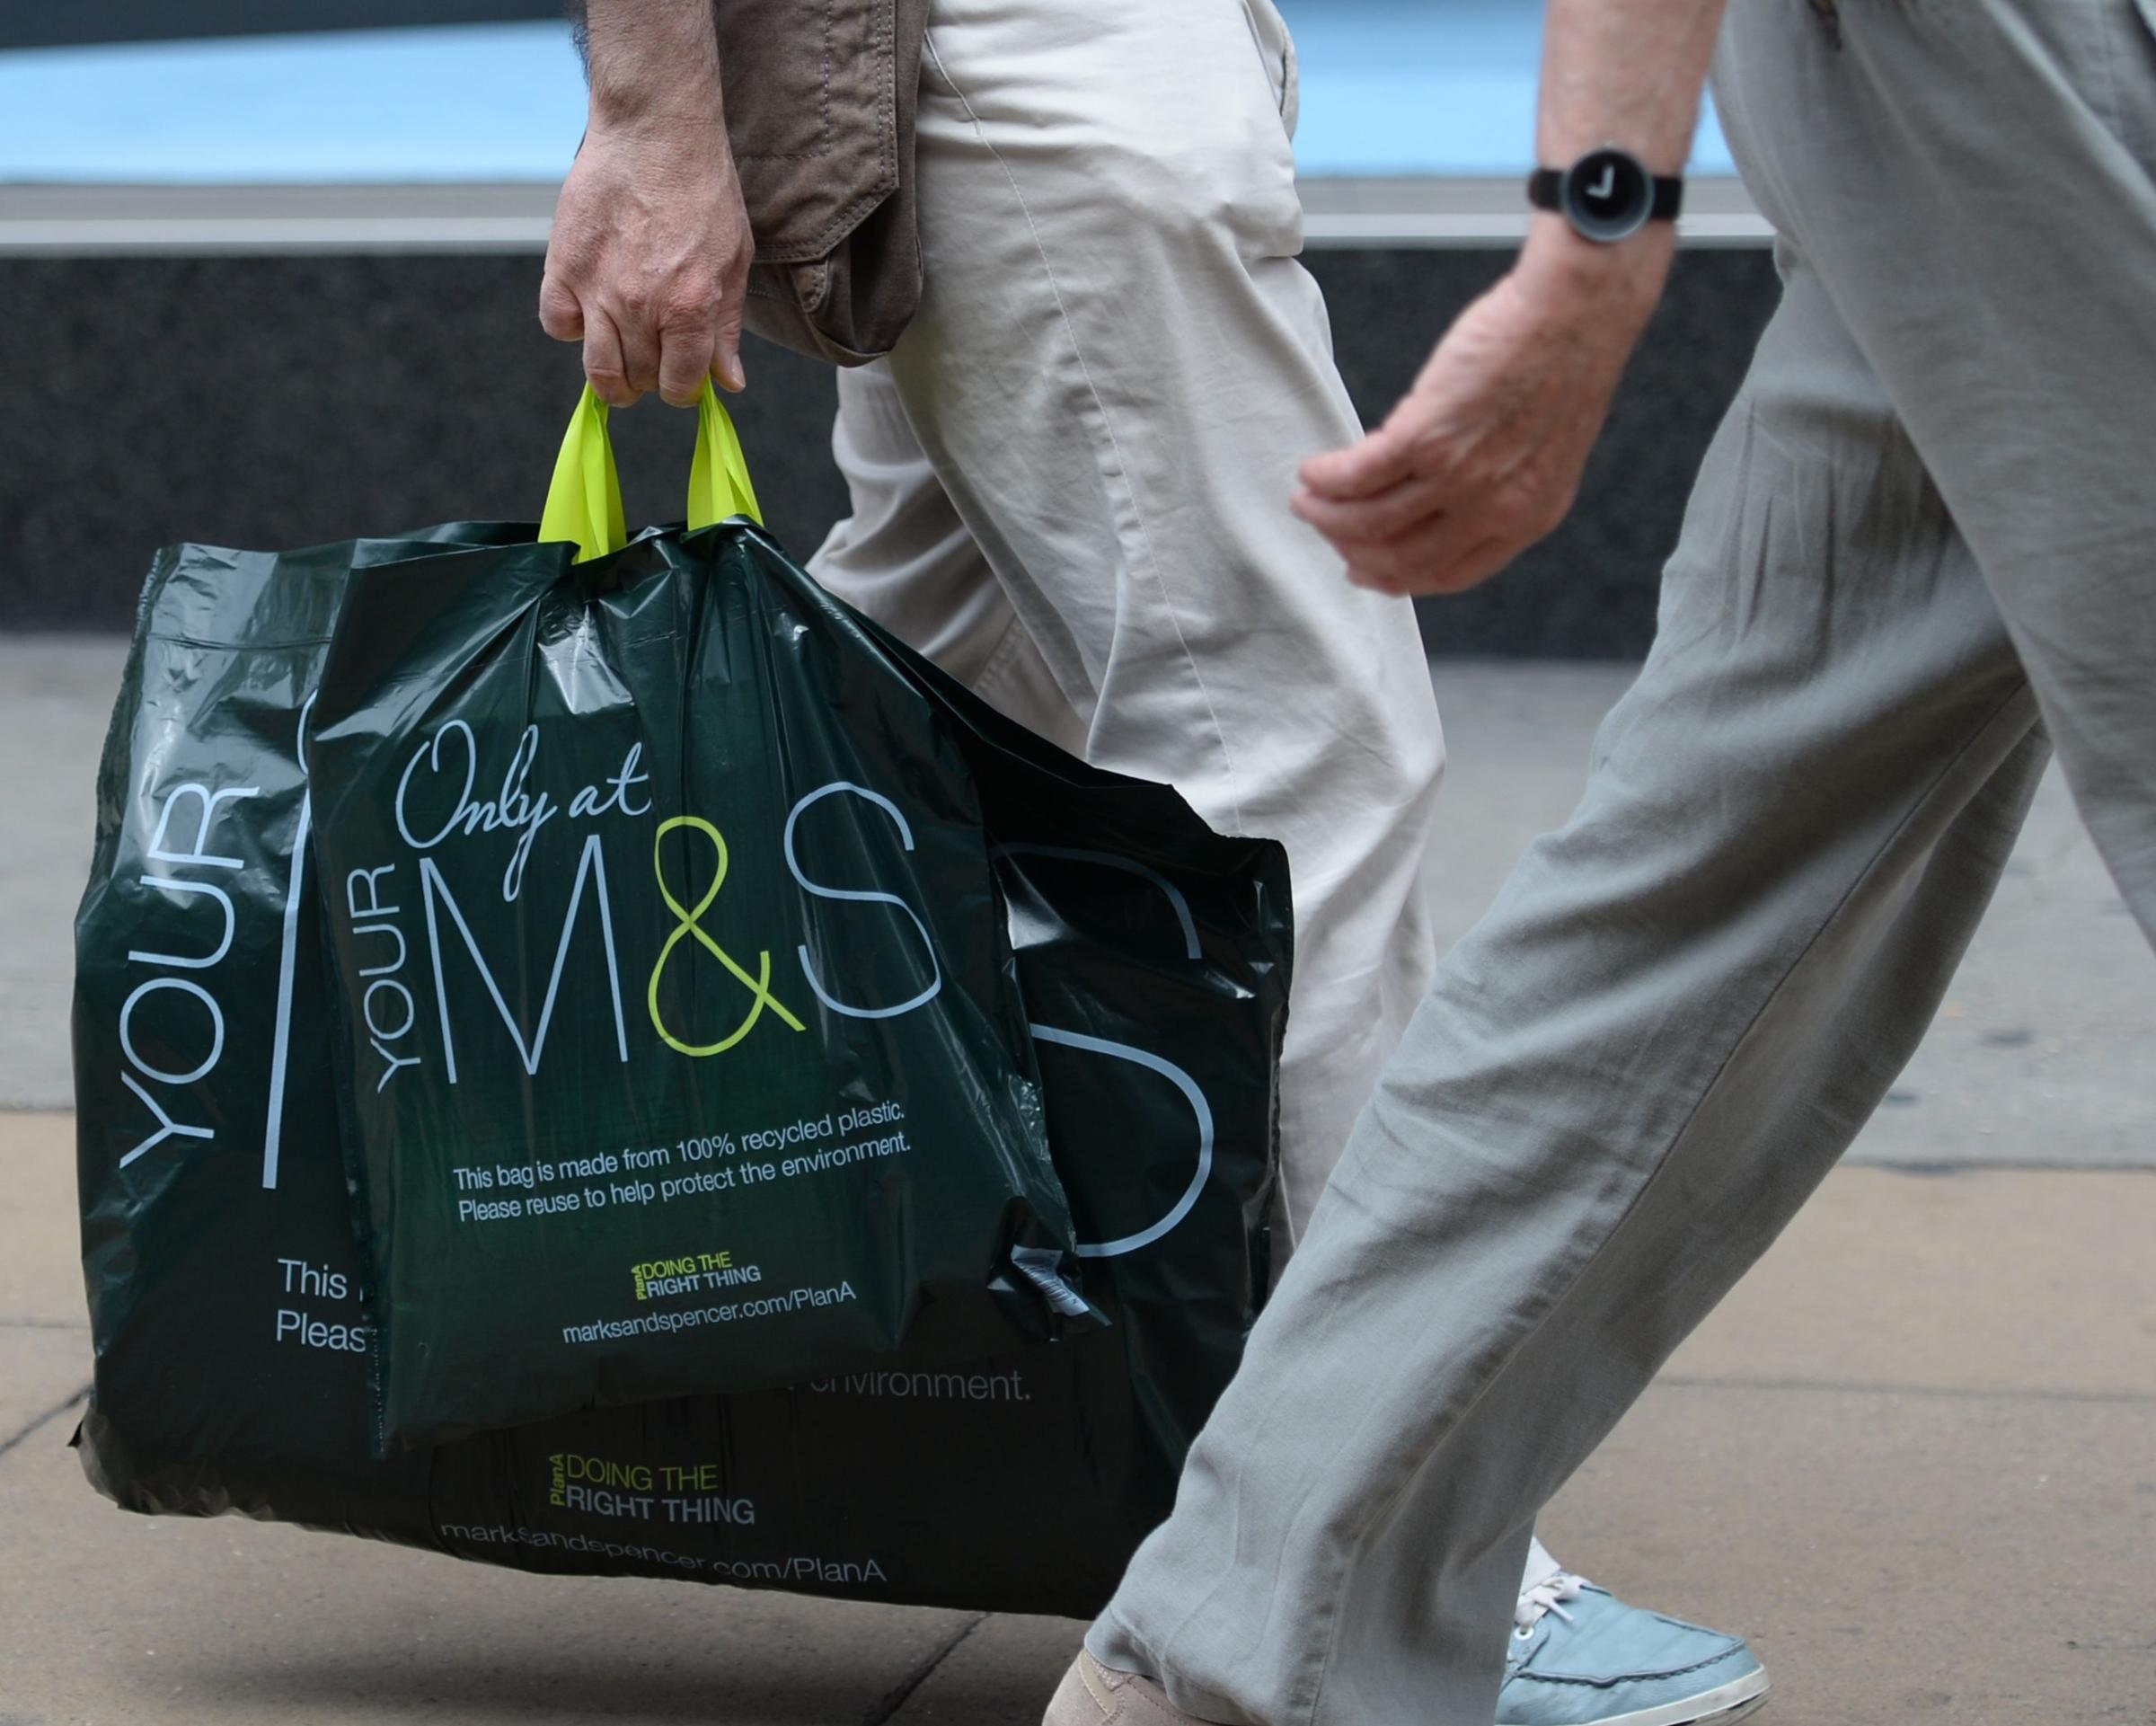 Shares in M&S fell 5.6 per cent in the 13 weeks to Christmas